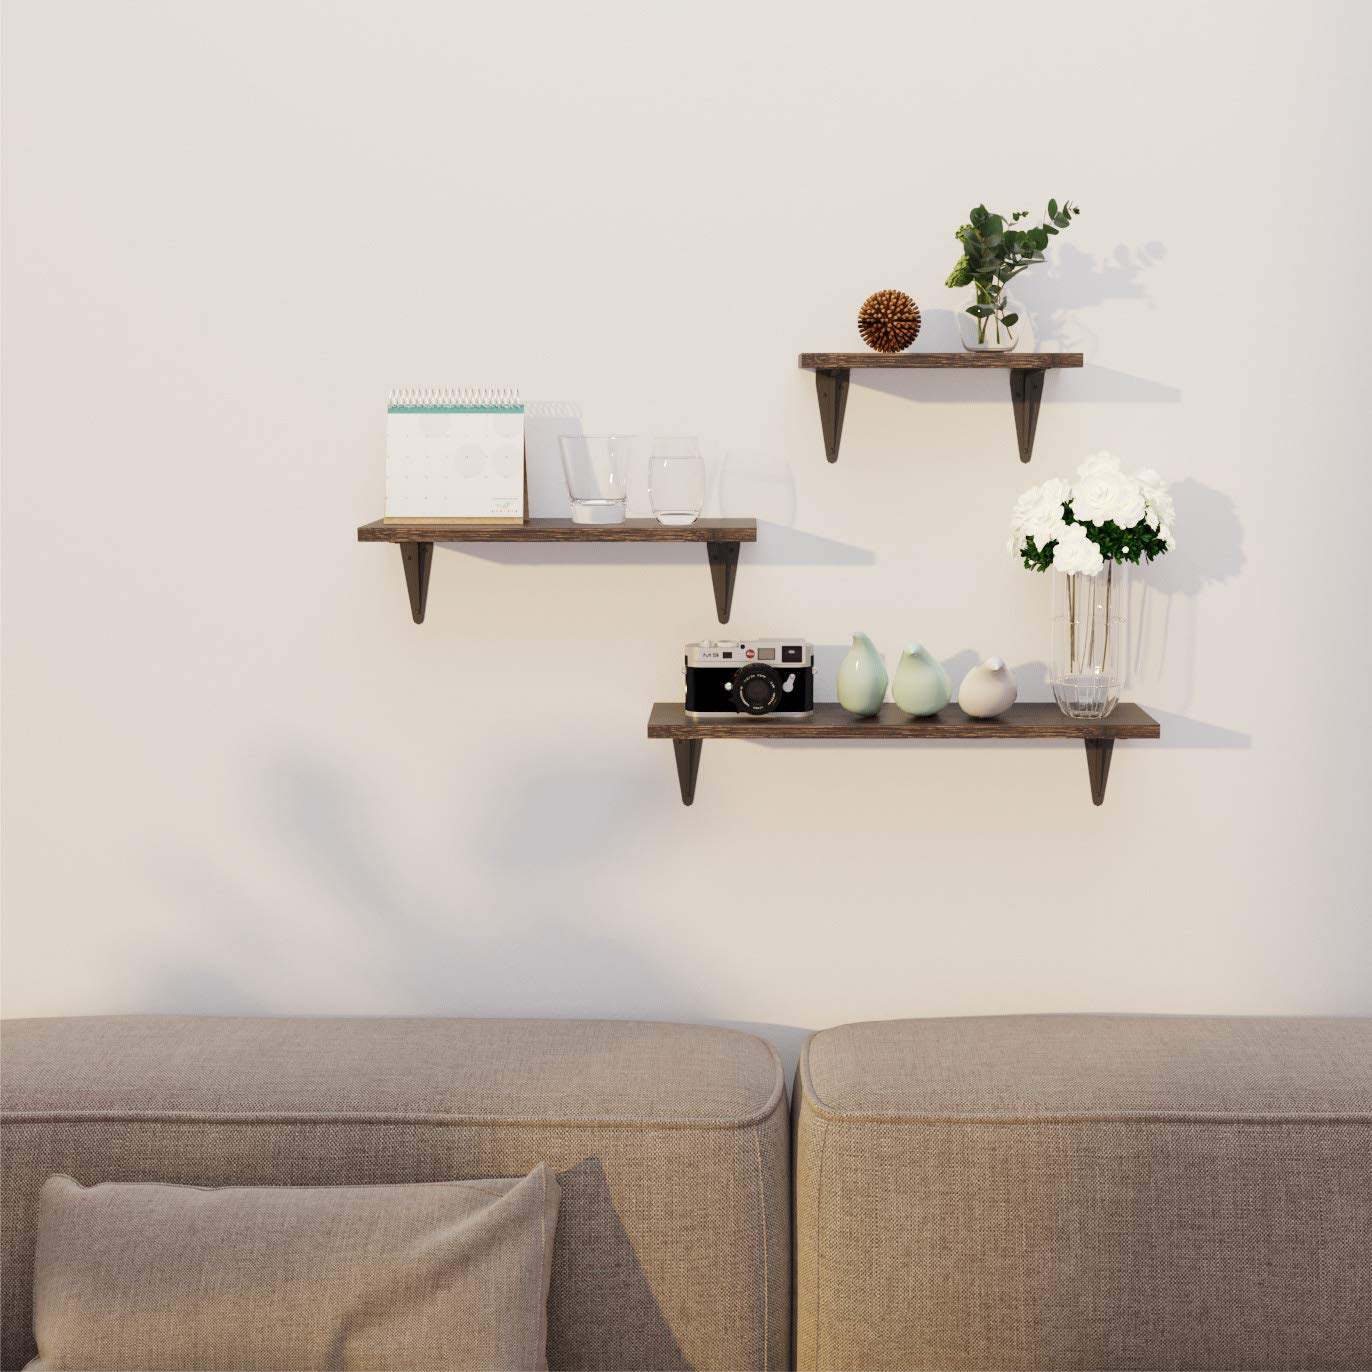 Living Room Office and More BAMFOX Floating Shelves Wall Mounted Set of 3 Bathroom Rustic Bamboo Wall Storage Shelves for Bedroom Kitchen